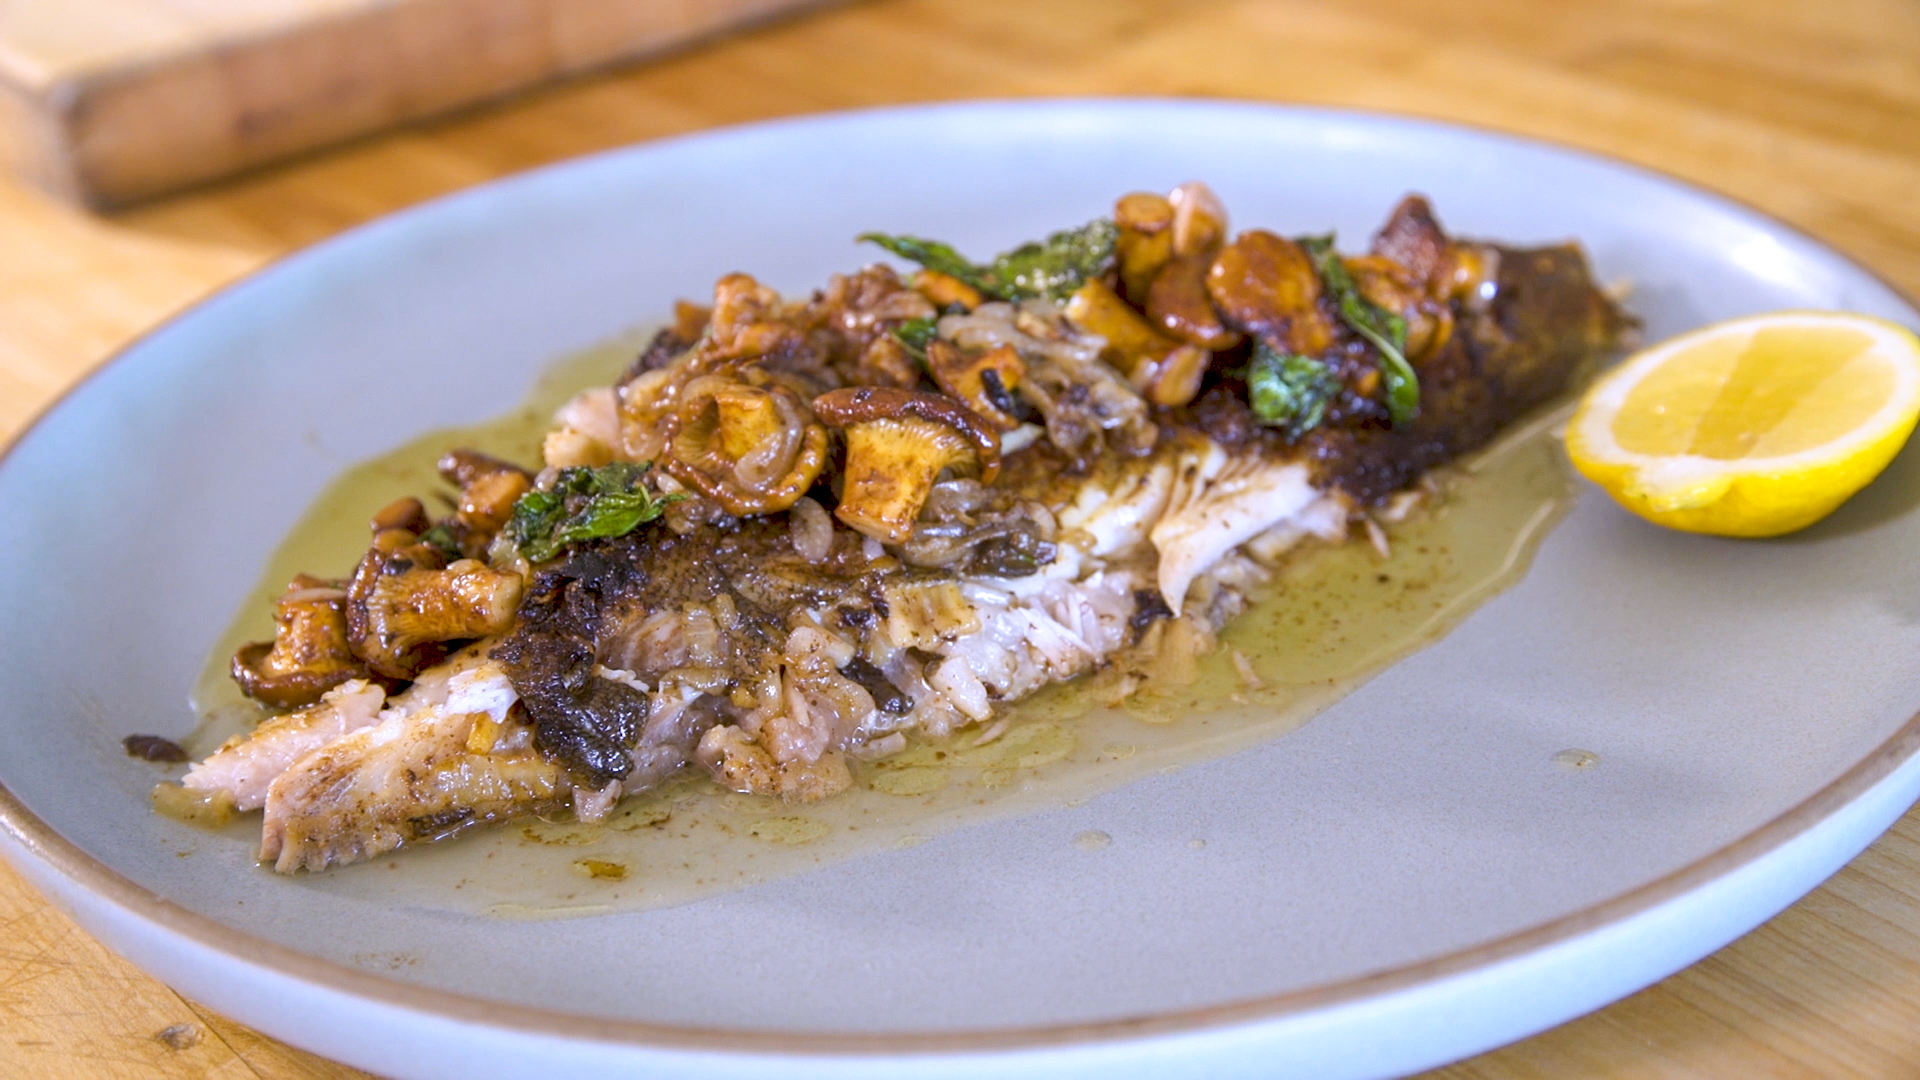 Chris Cosentino's Whole Roasted Petrale Sole with Brown Butter & Chanterelles